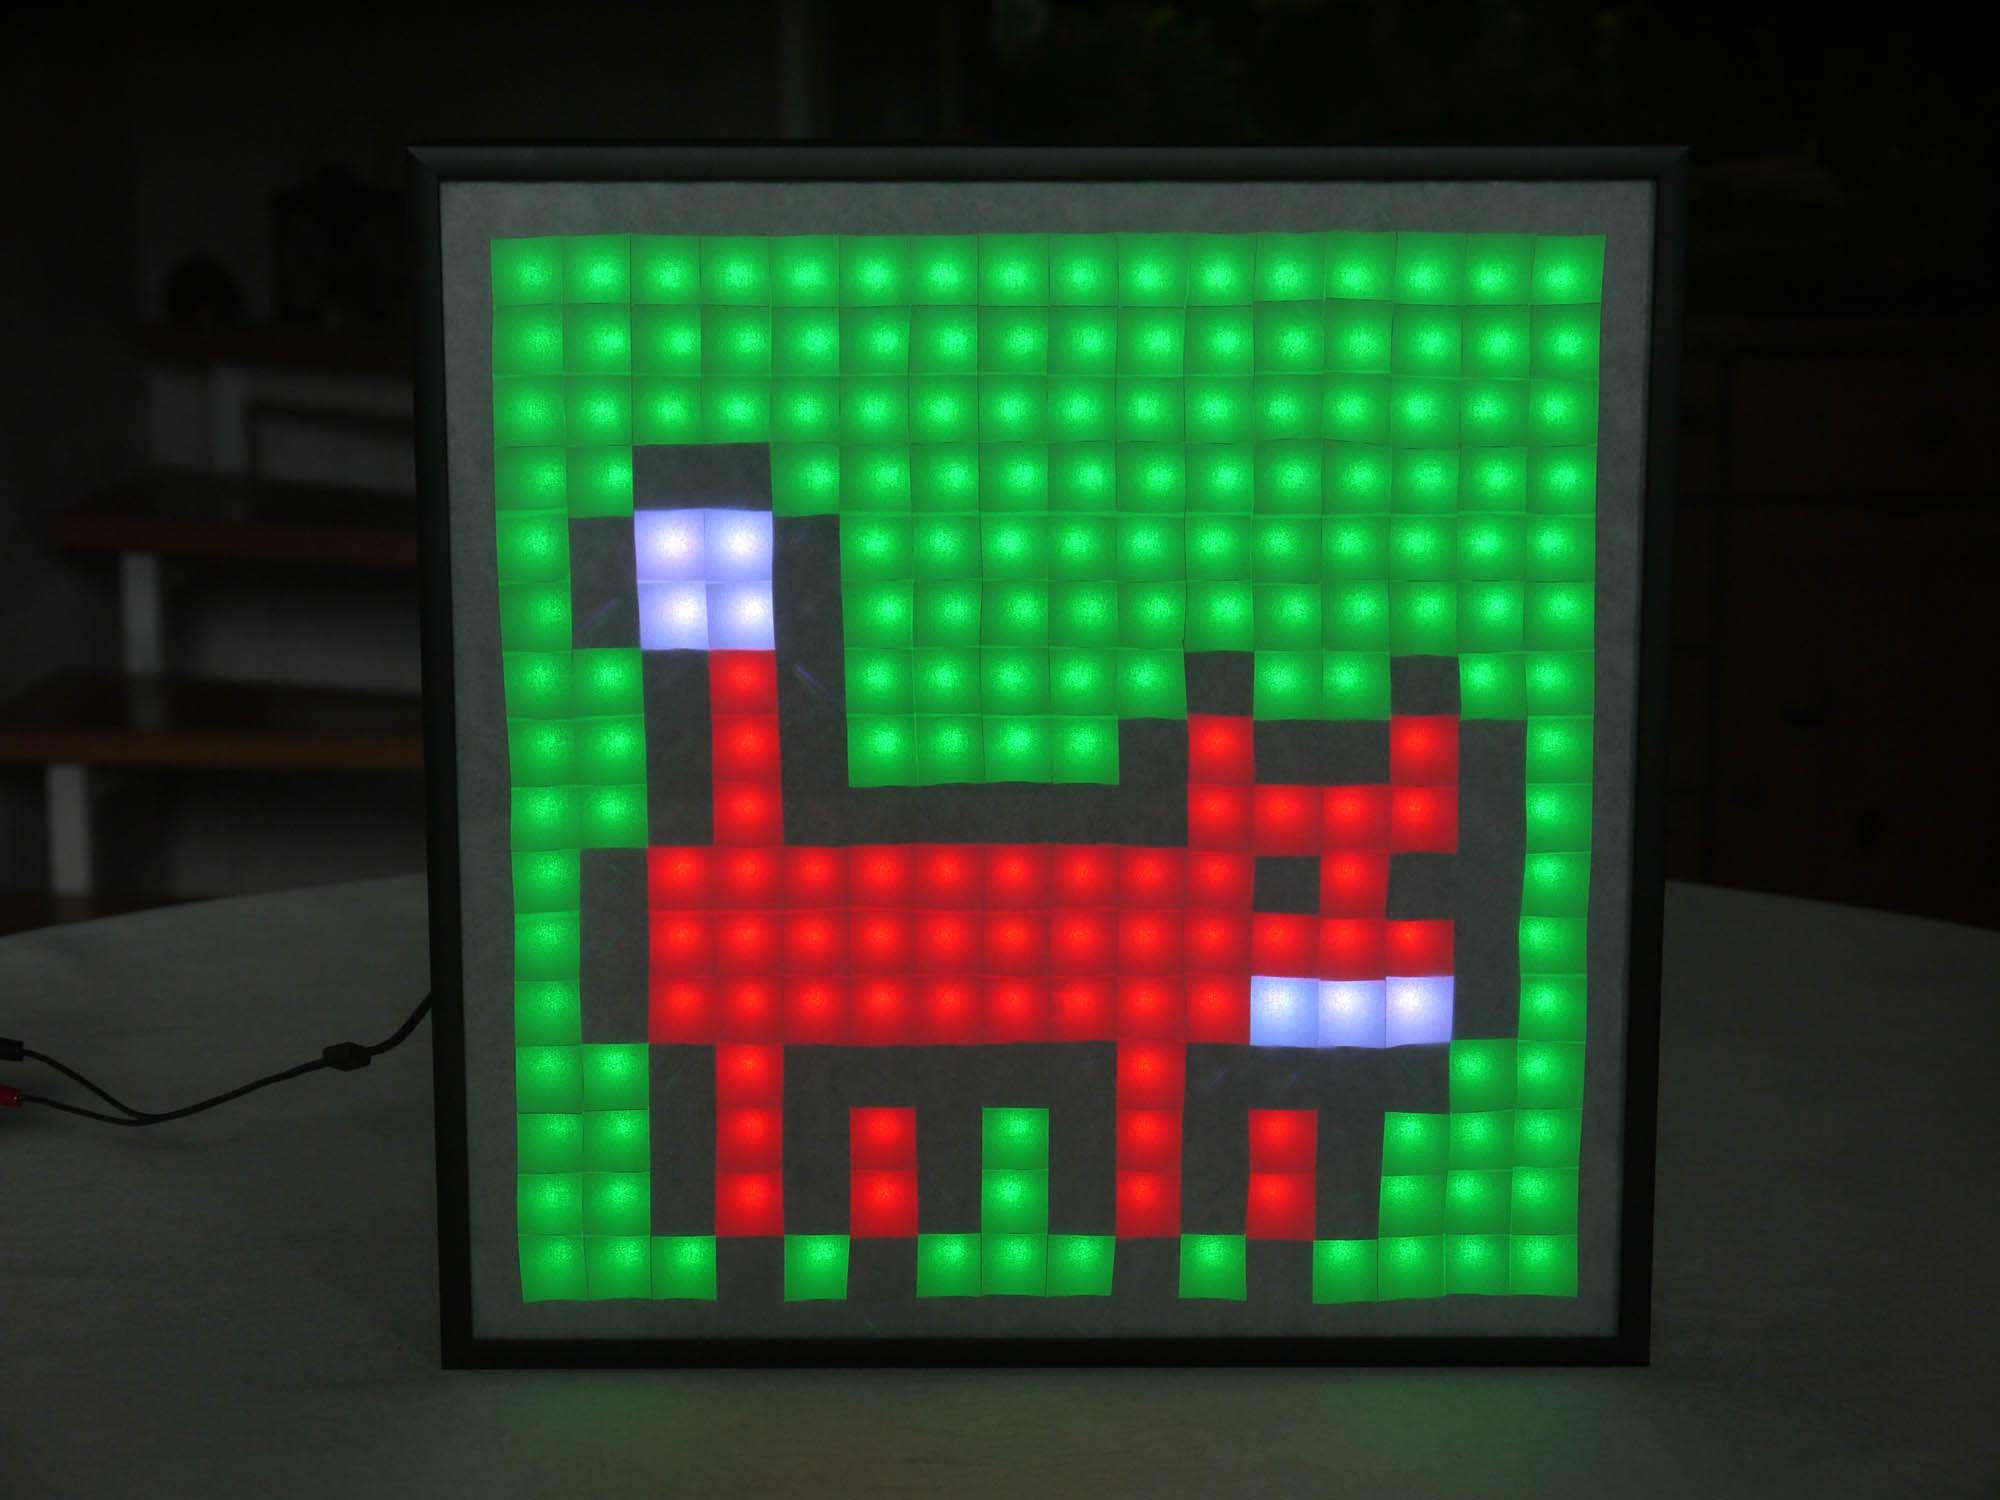 GitHub - marian42/pixelpi: Games and Animations on 16x16 LEDs